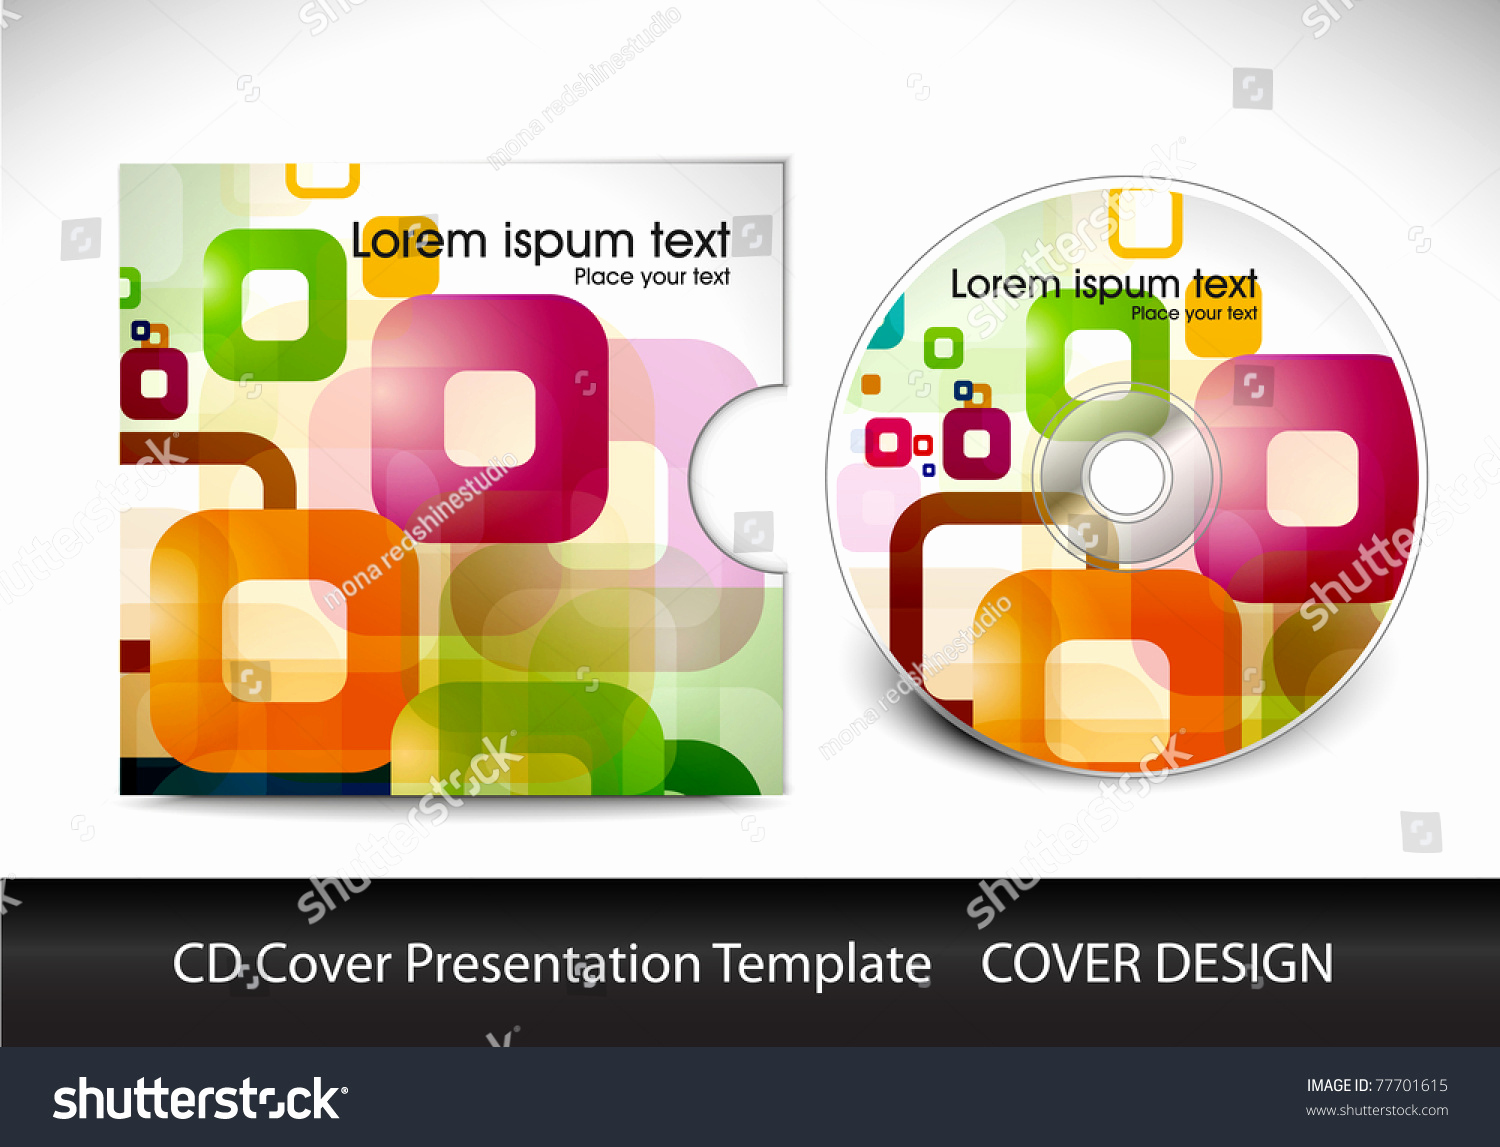 Cd Cover Design Template New Cd Cover Design Template Presentation Editable Vector